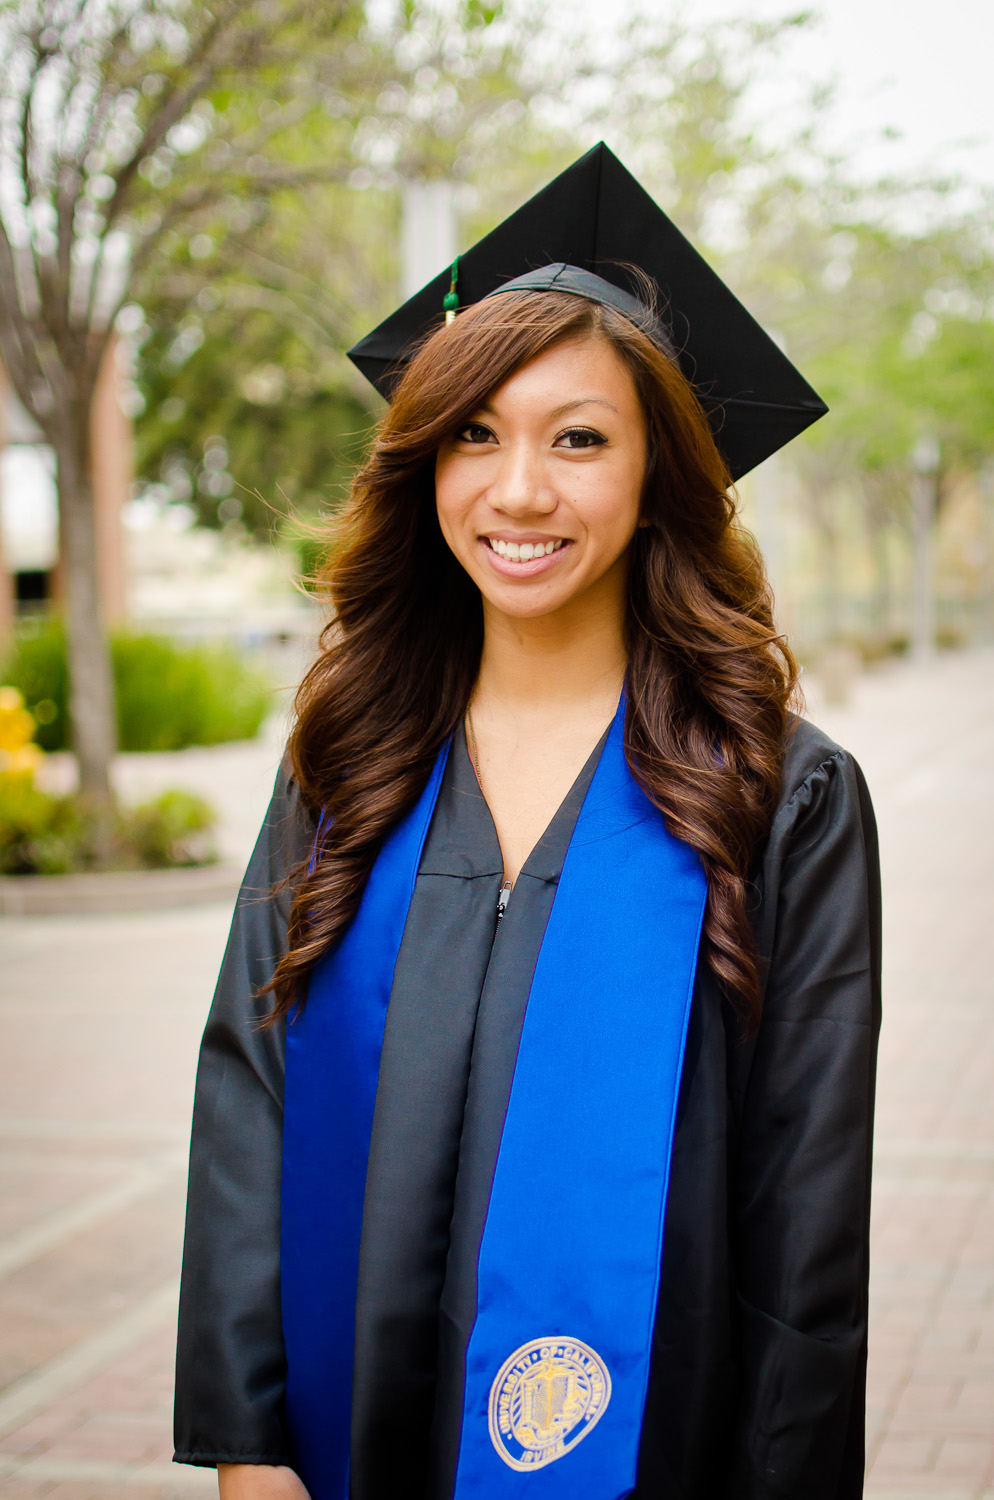 Bryan Miraflor Photography-Graduation Photoshoot-0064.jpg